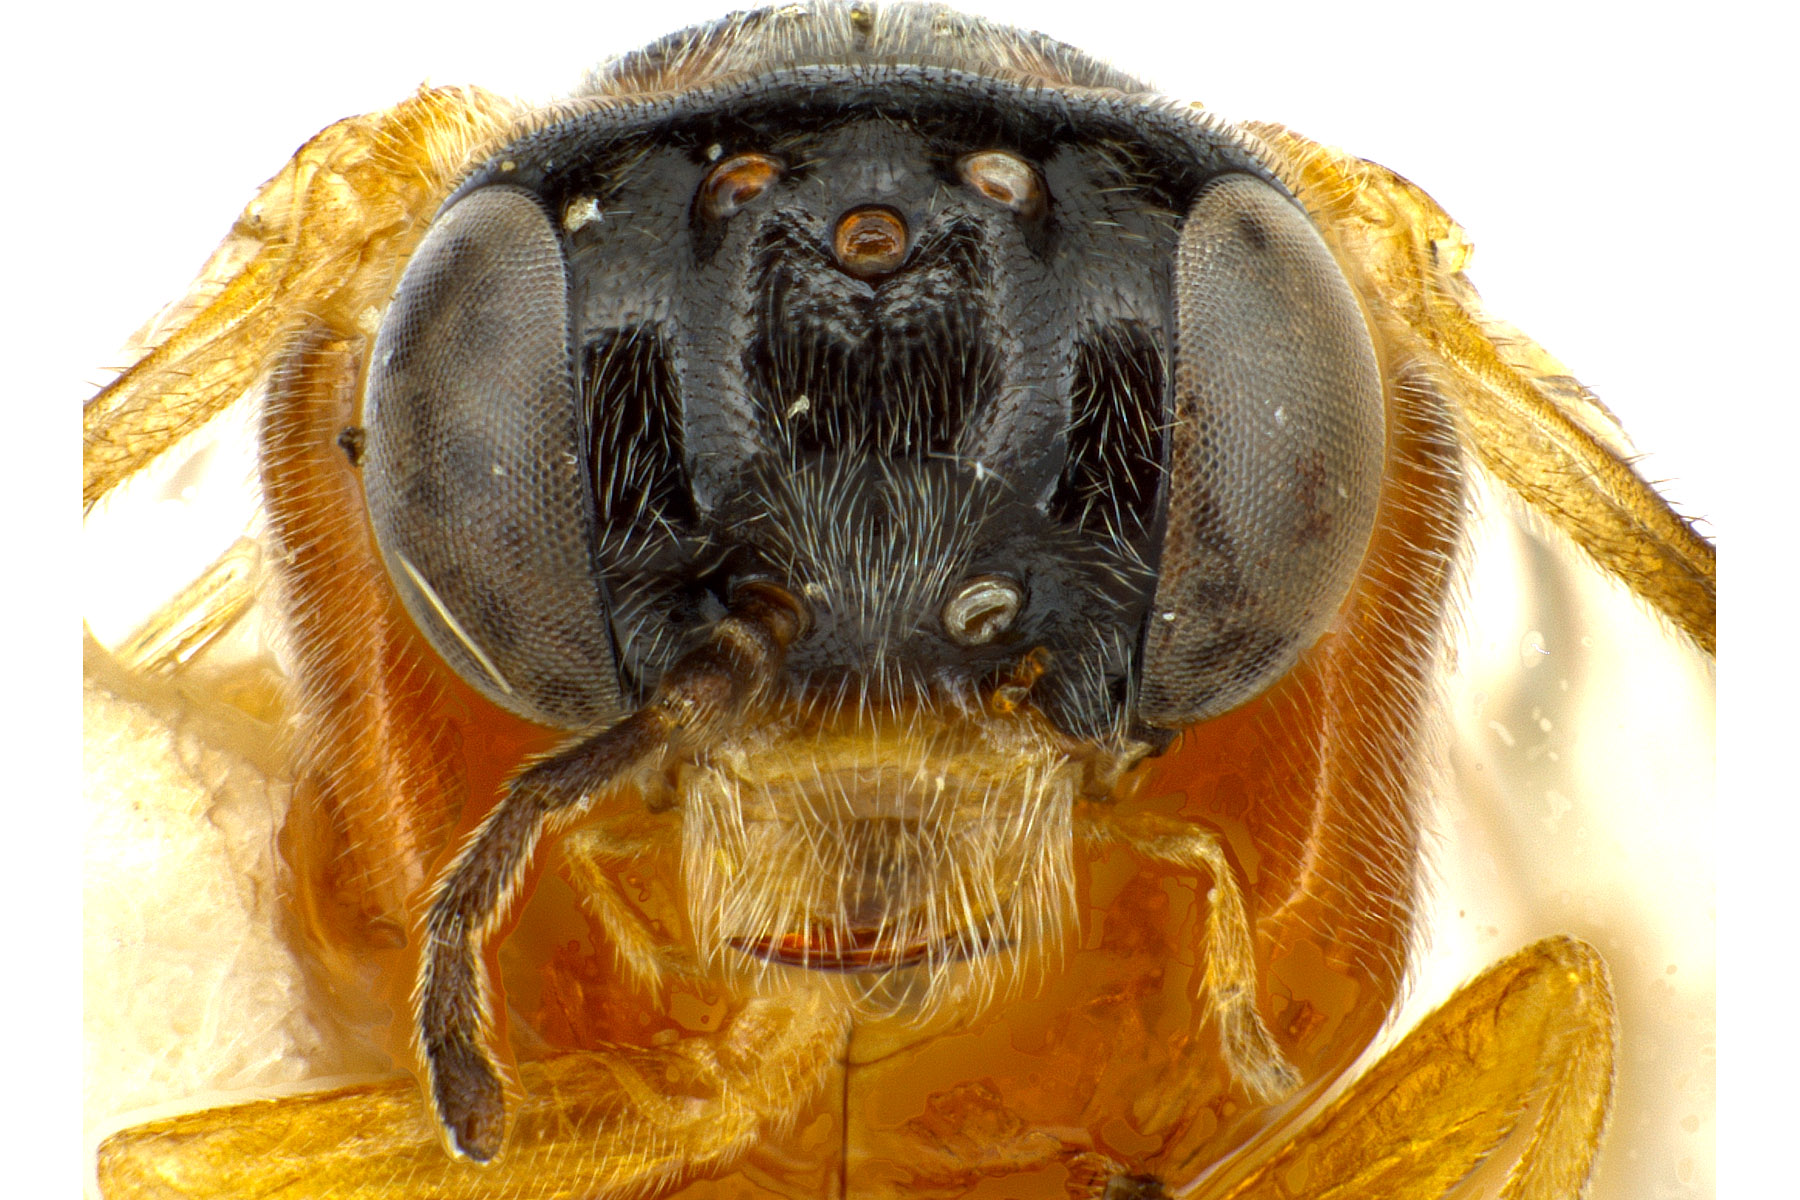 <em>Acordulecera dorsalis</em> female face; photo by J. Orr, WSDA